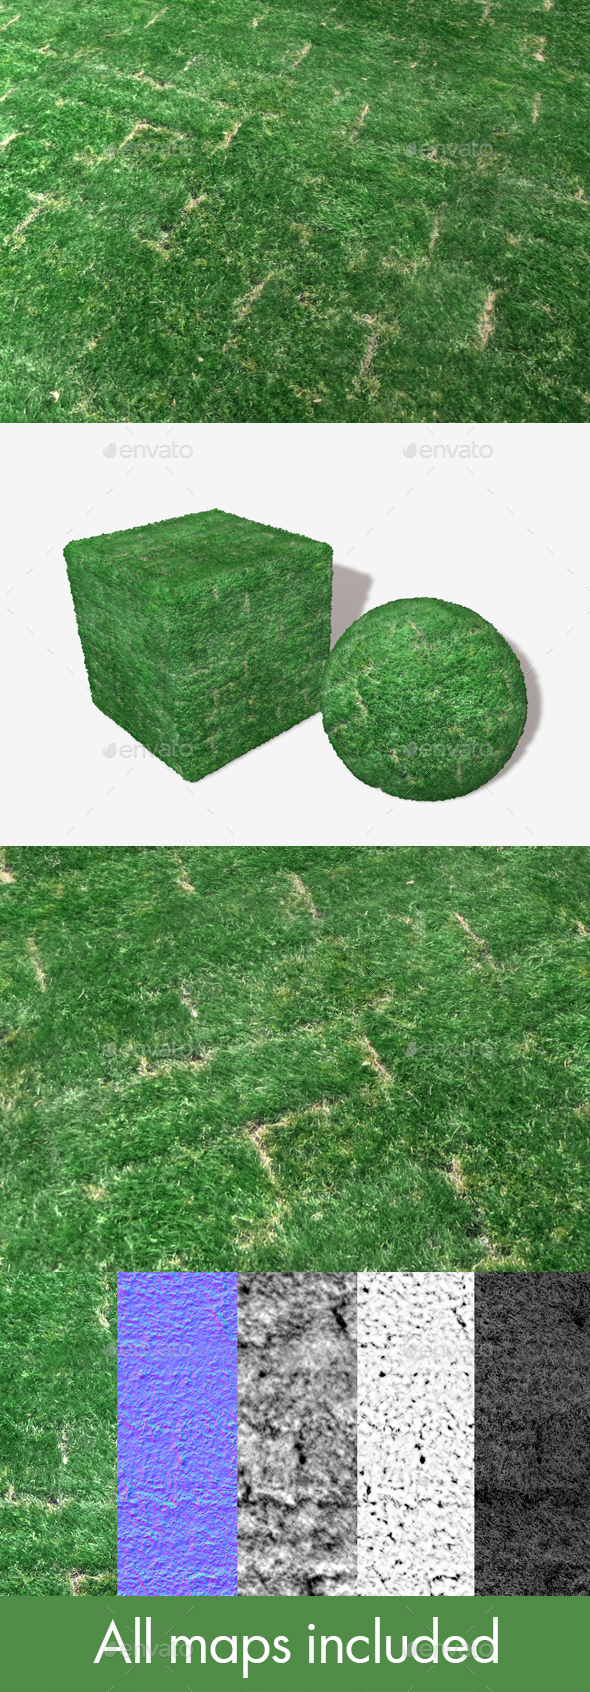 Freshly Laid Turf Patches Texture - 3DOcean Item for Sale